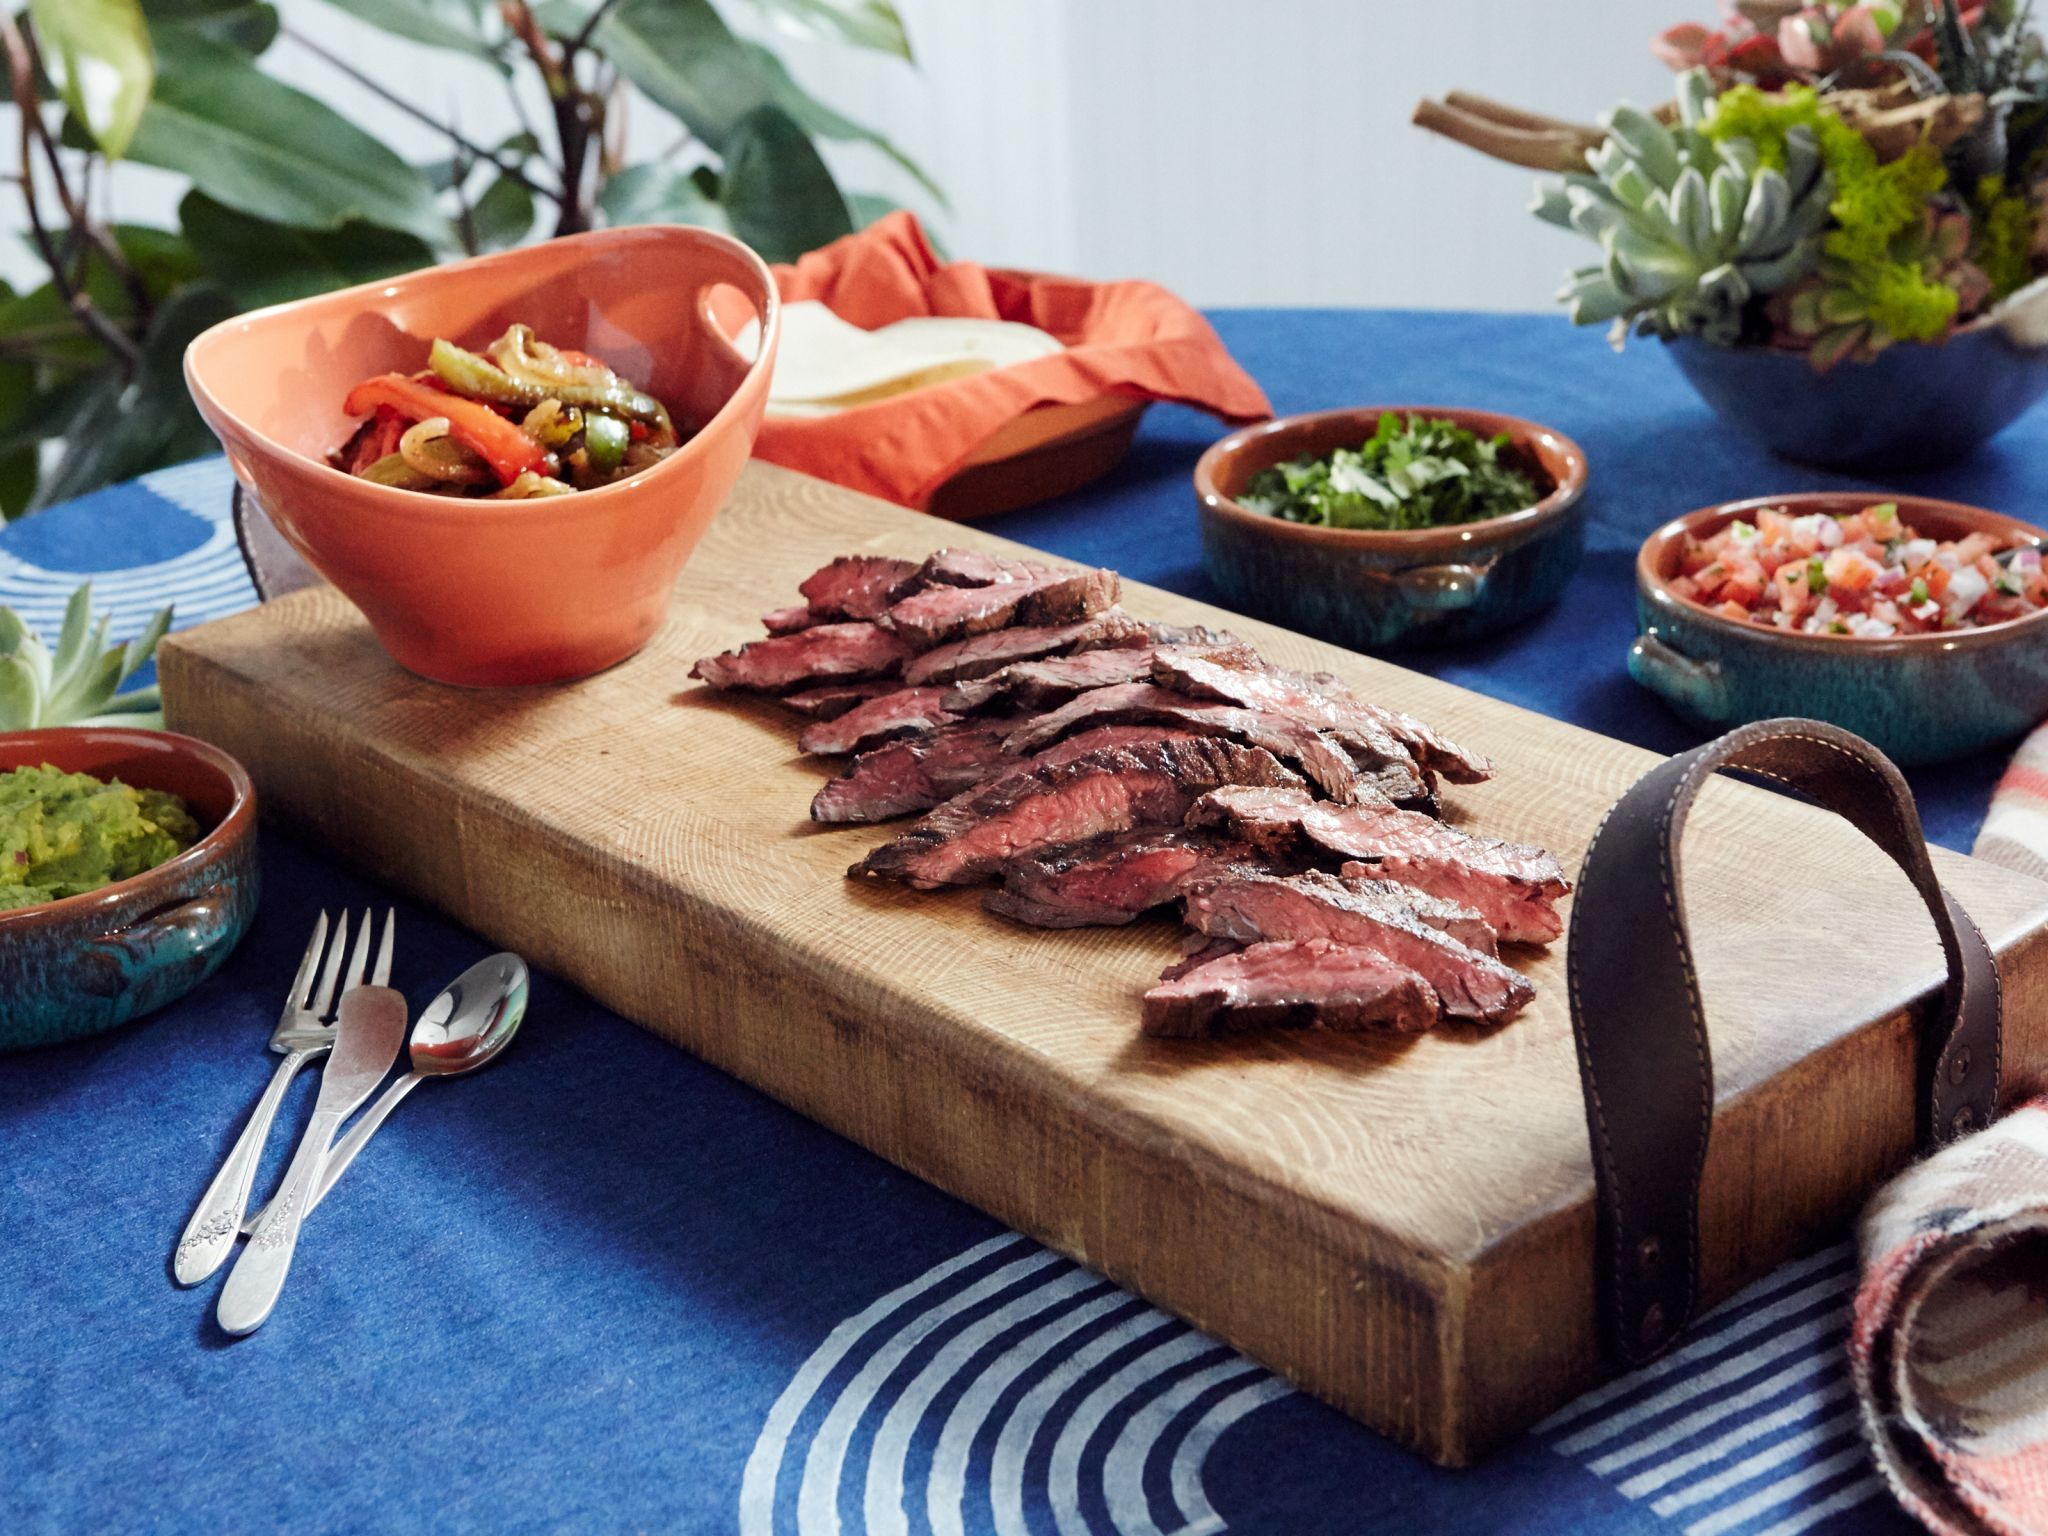 Steak fajitas with guacamole and fixings recipe patricia steak fajitas with guacamole and fixings forumfinder Image collections